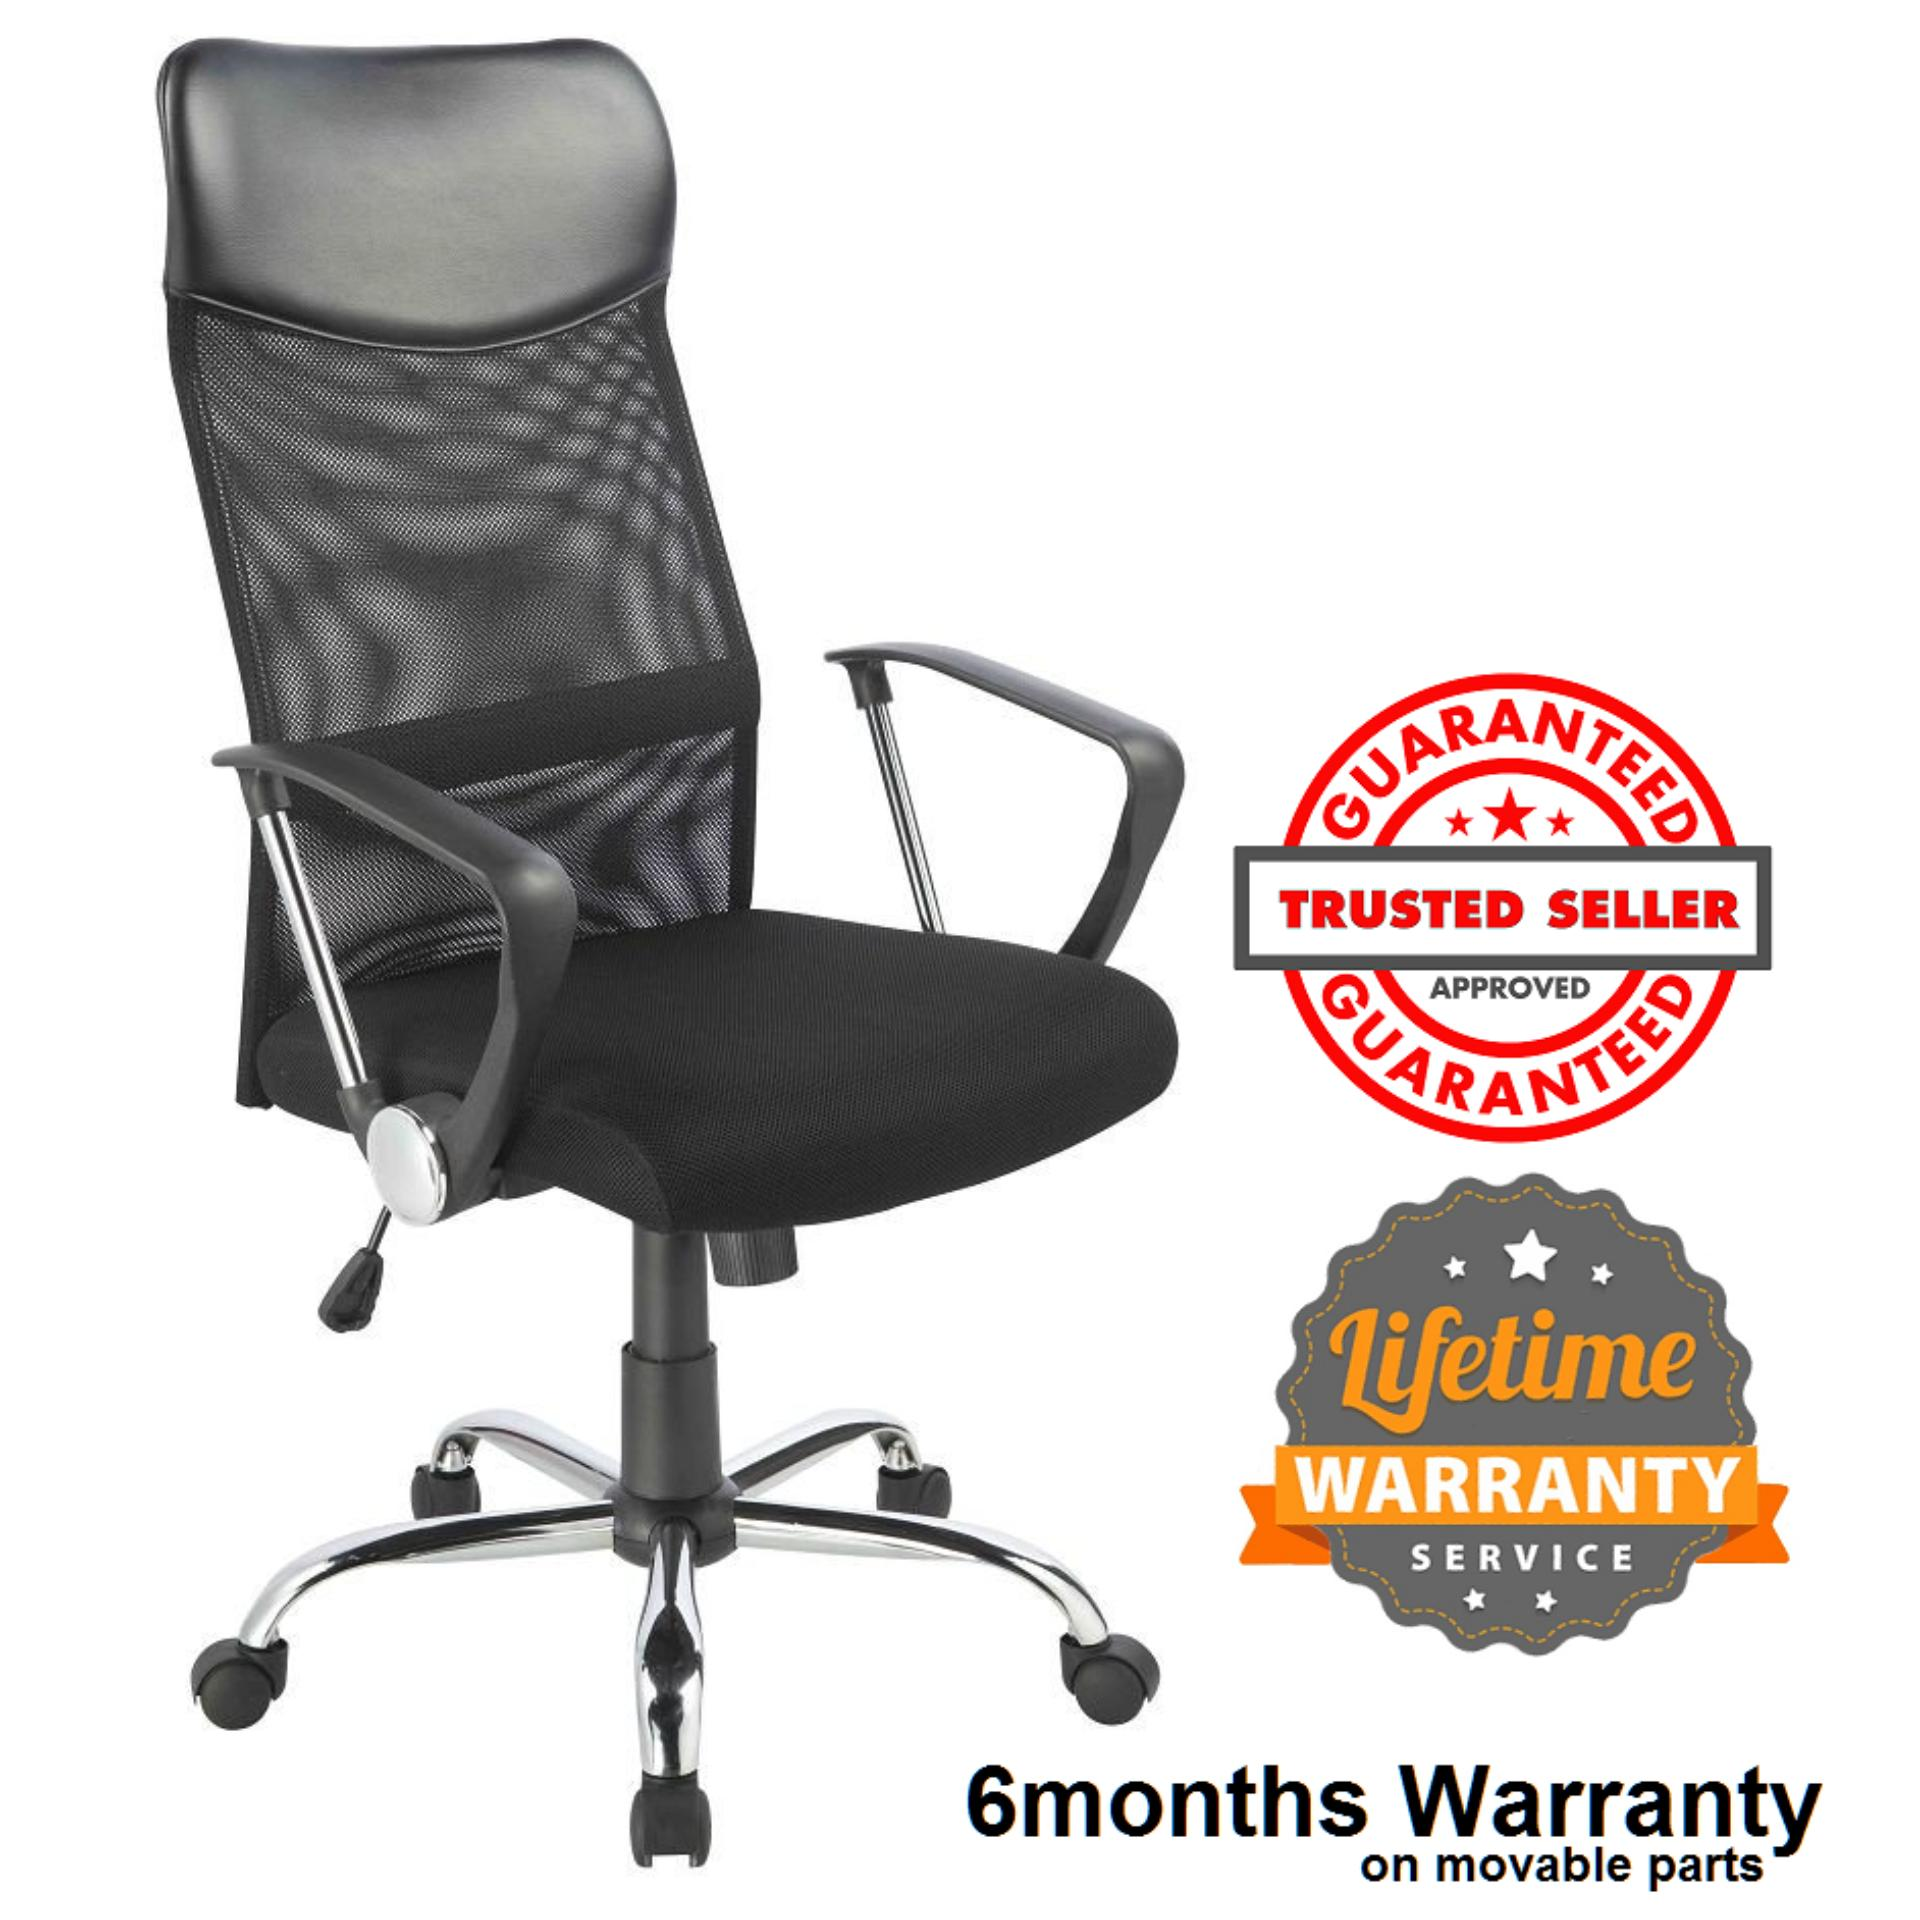 Ihome 122 Executive Office Chair By Ira Home Furniture Enterprises.